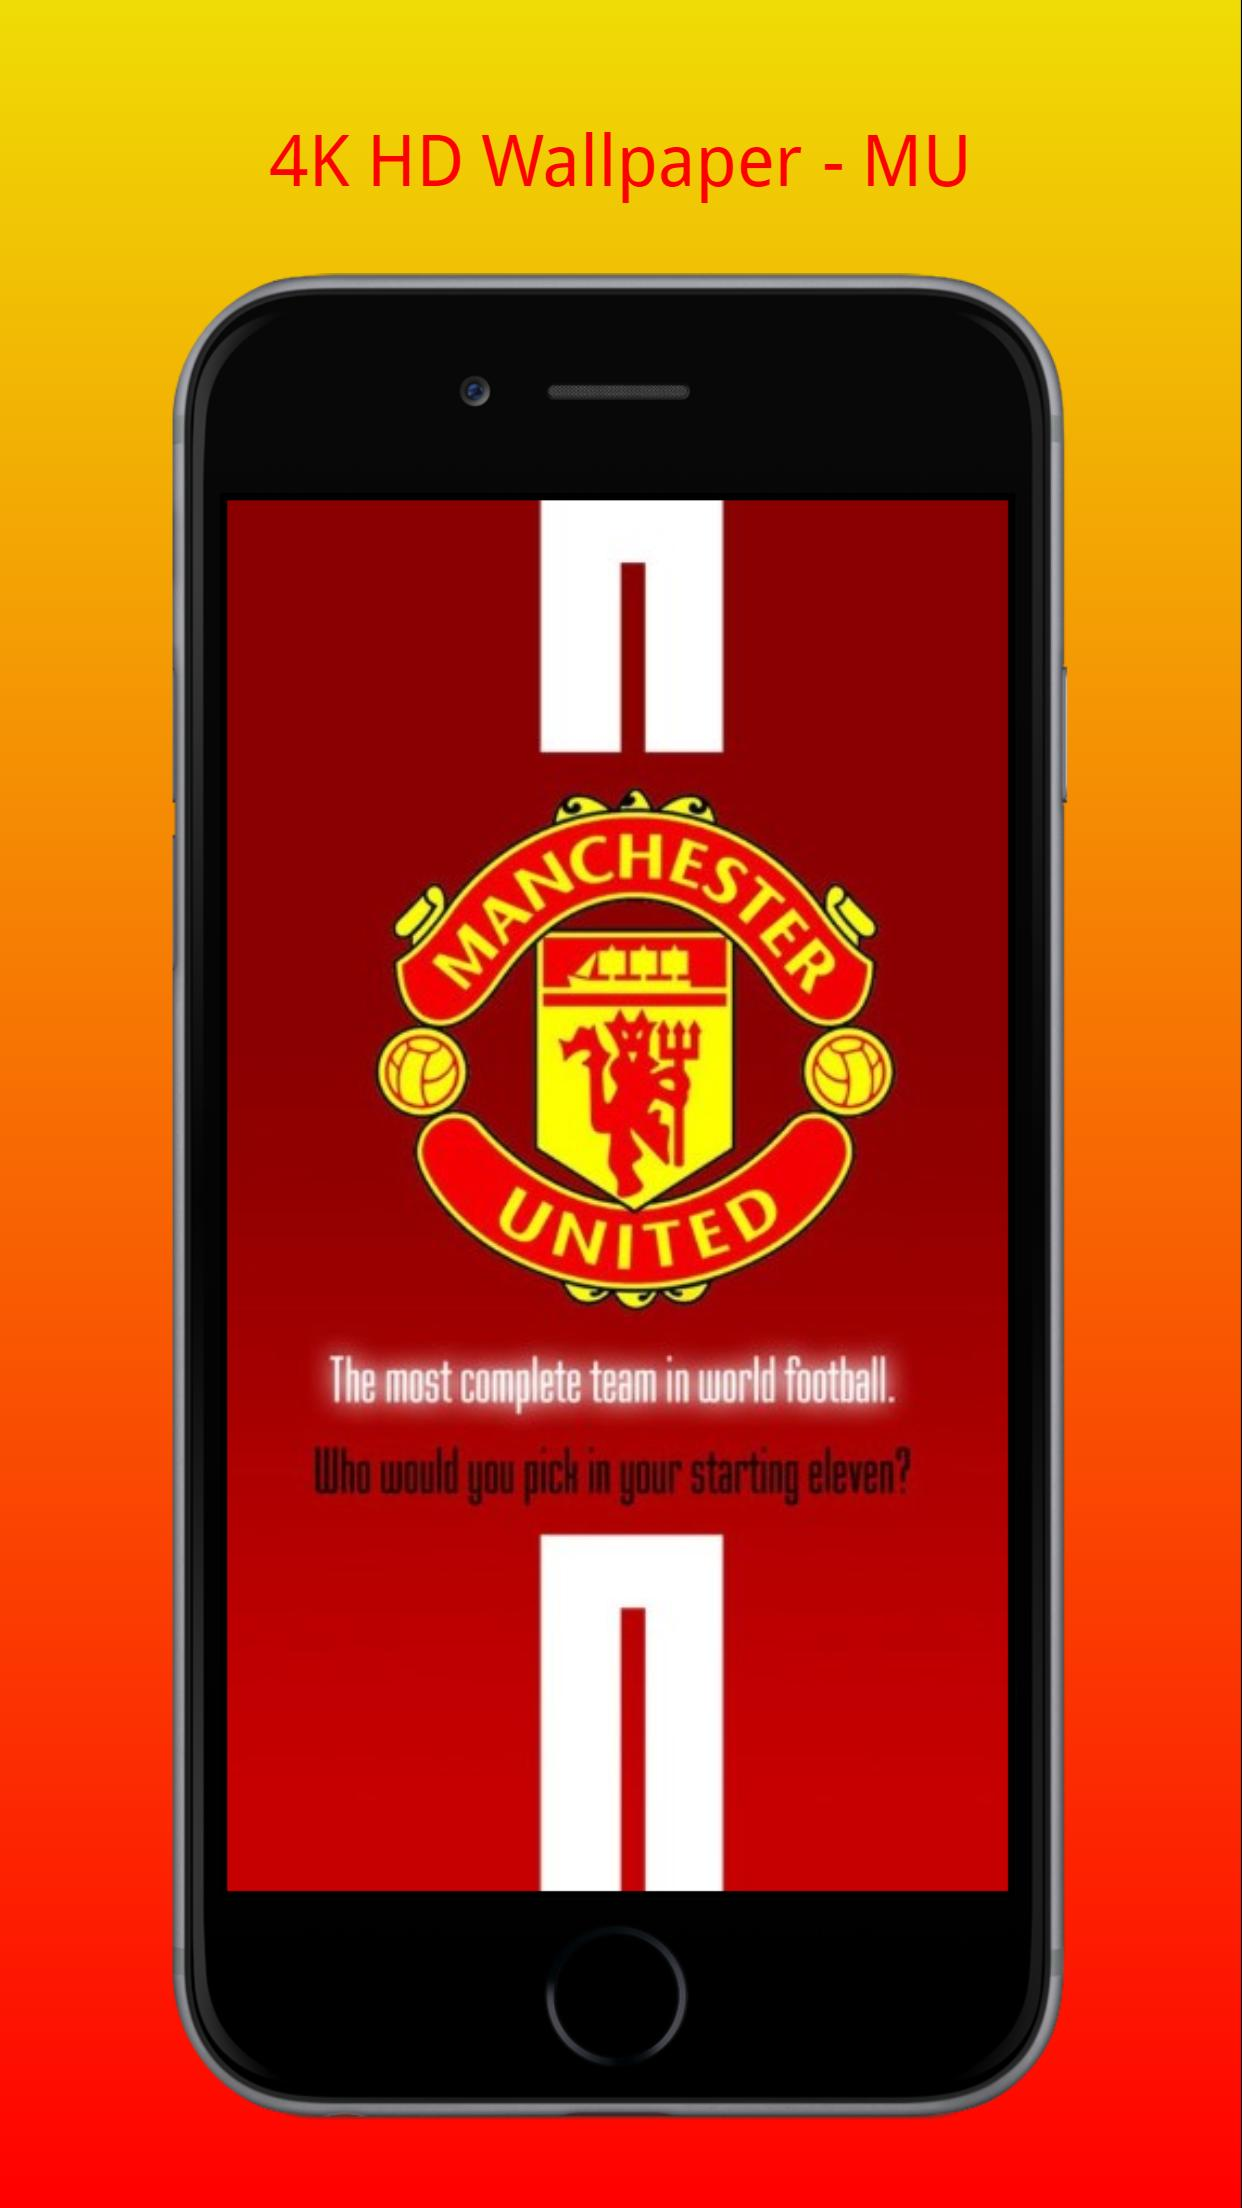 4k hd wallpaper manchester united for android apk download 4k hd wallpaper manchester united for